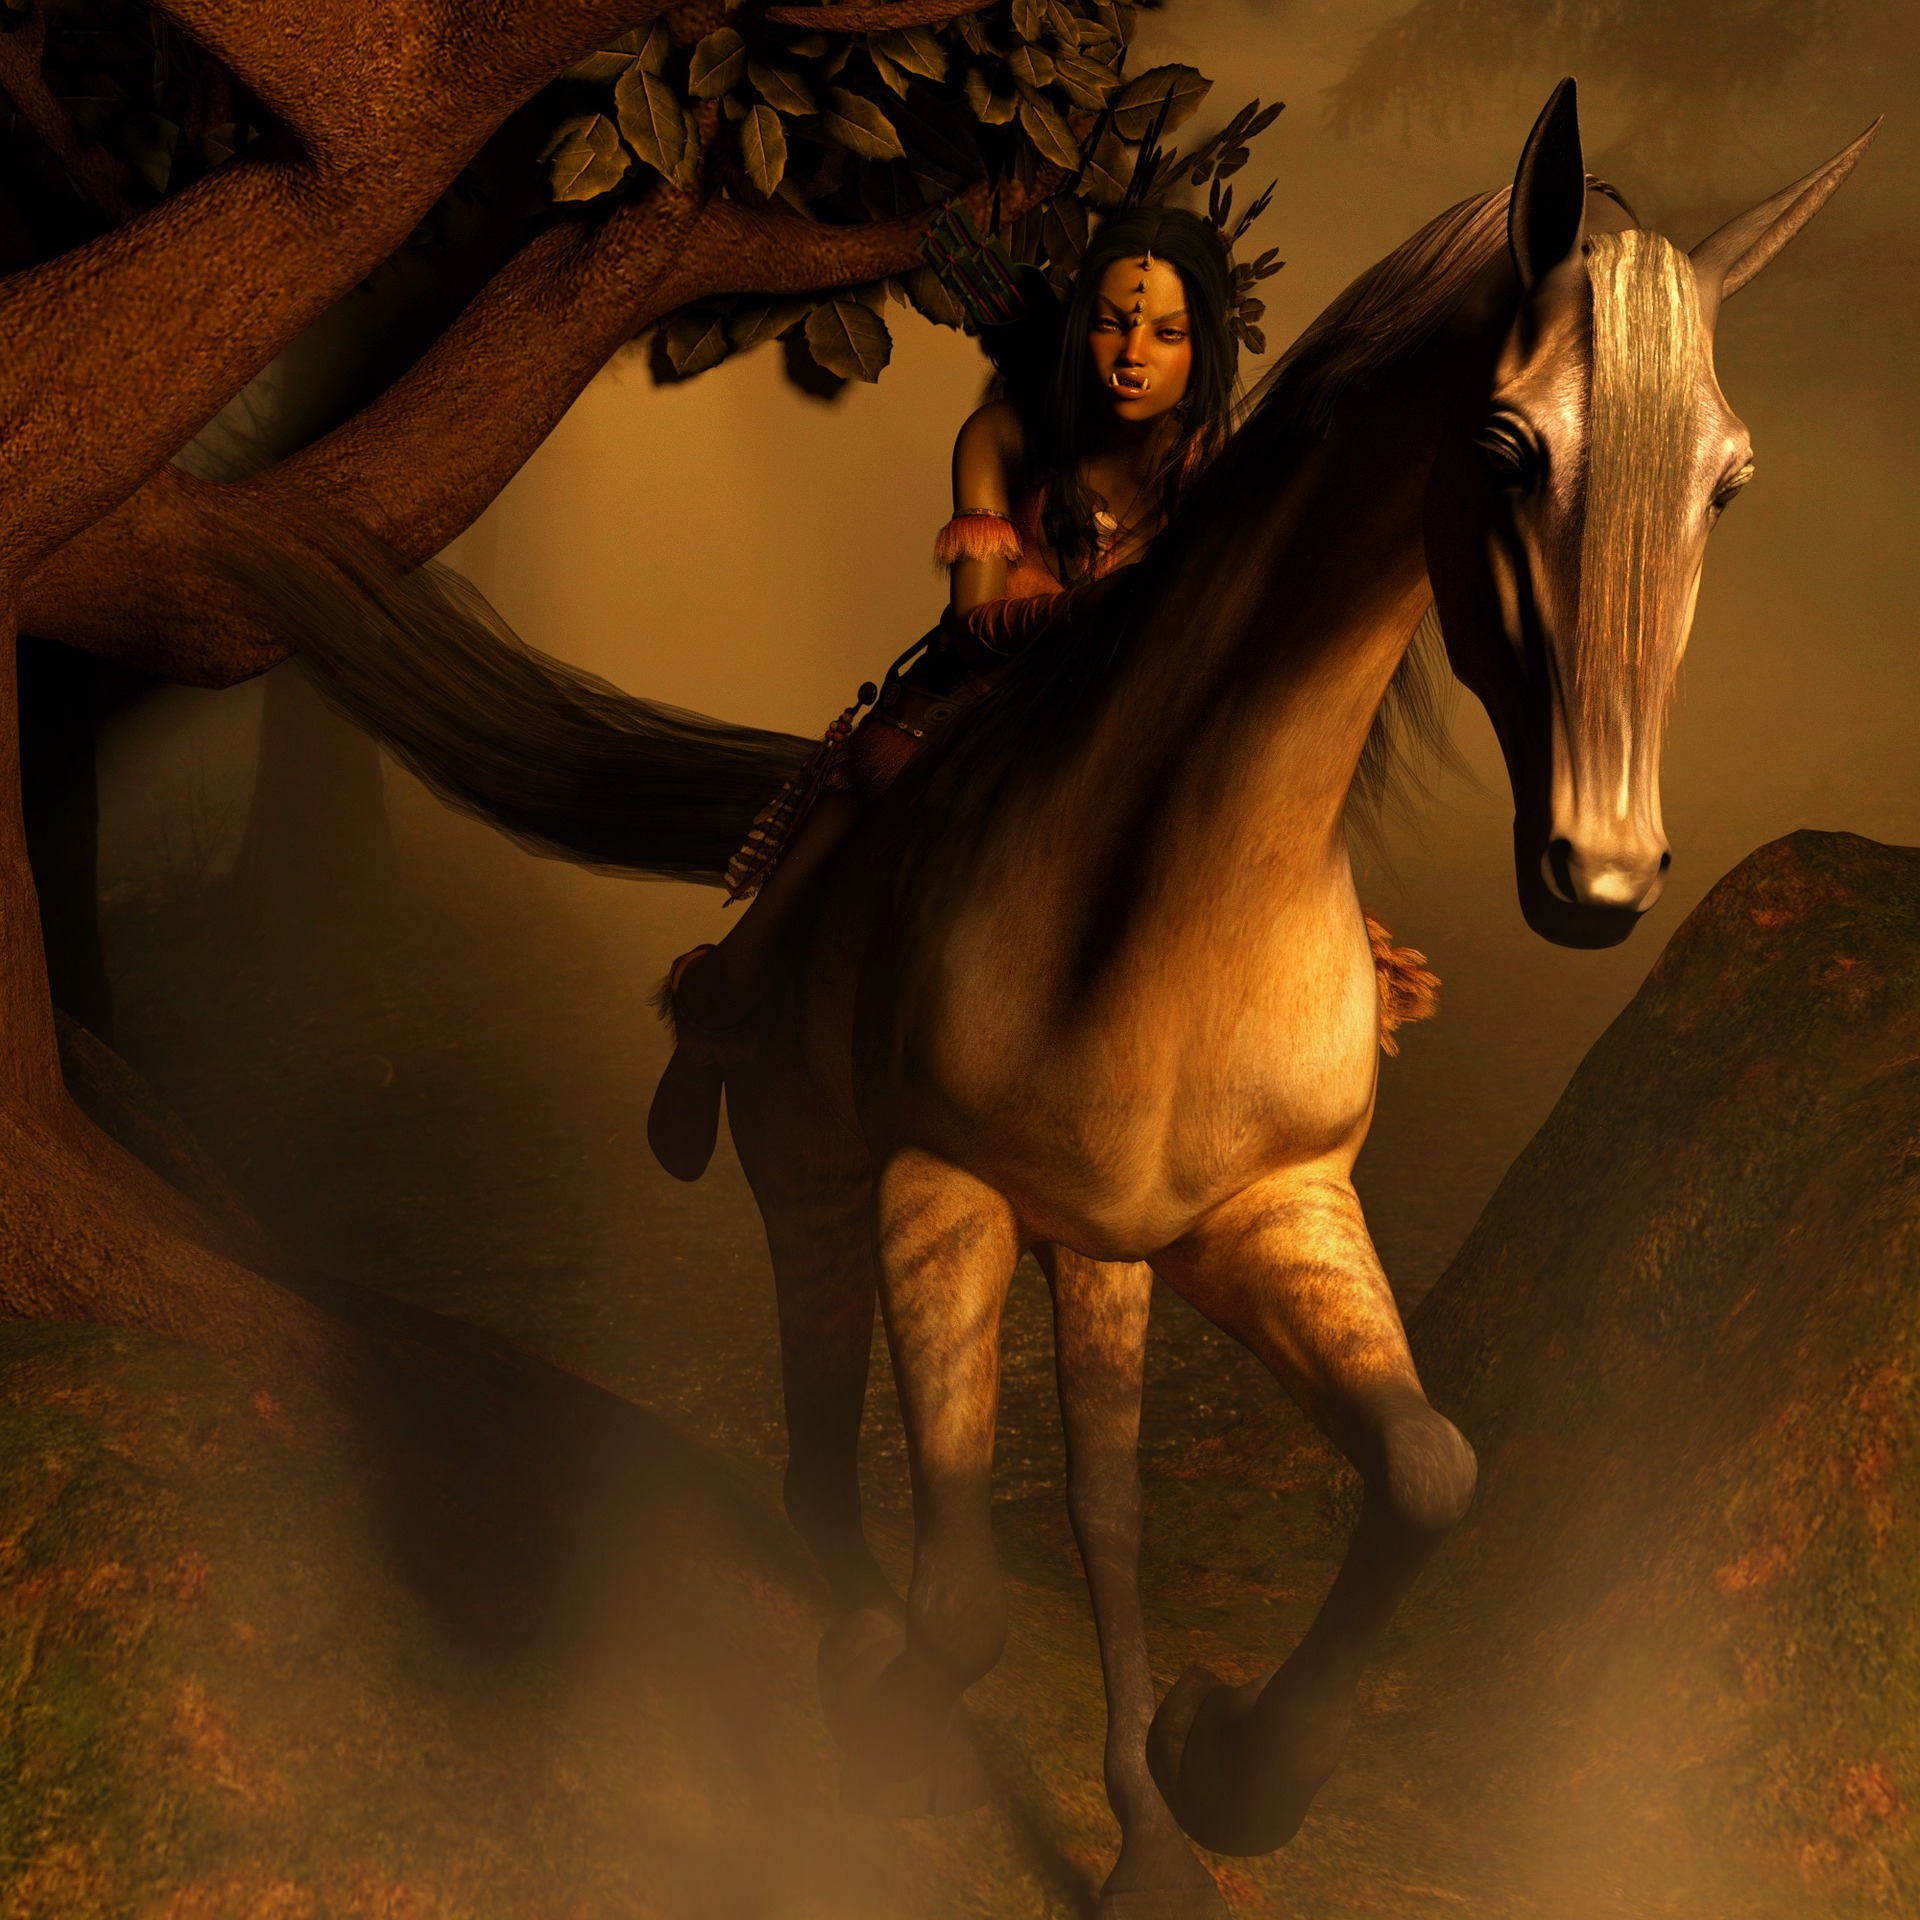 Then the girl saw herself on one of her father's stallions, pushing the animal to run so she could disappear.